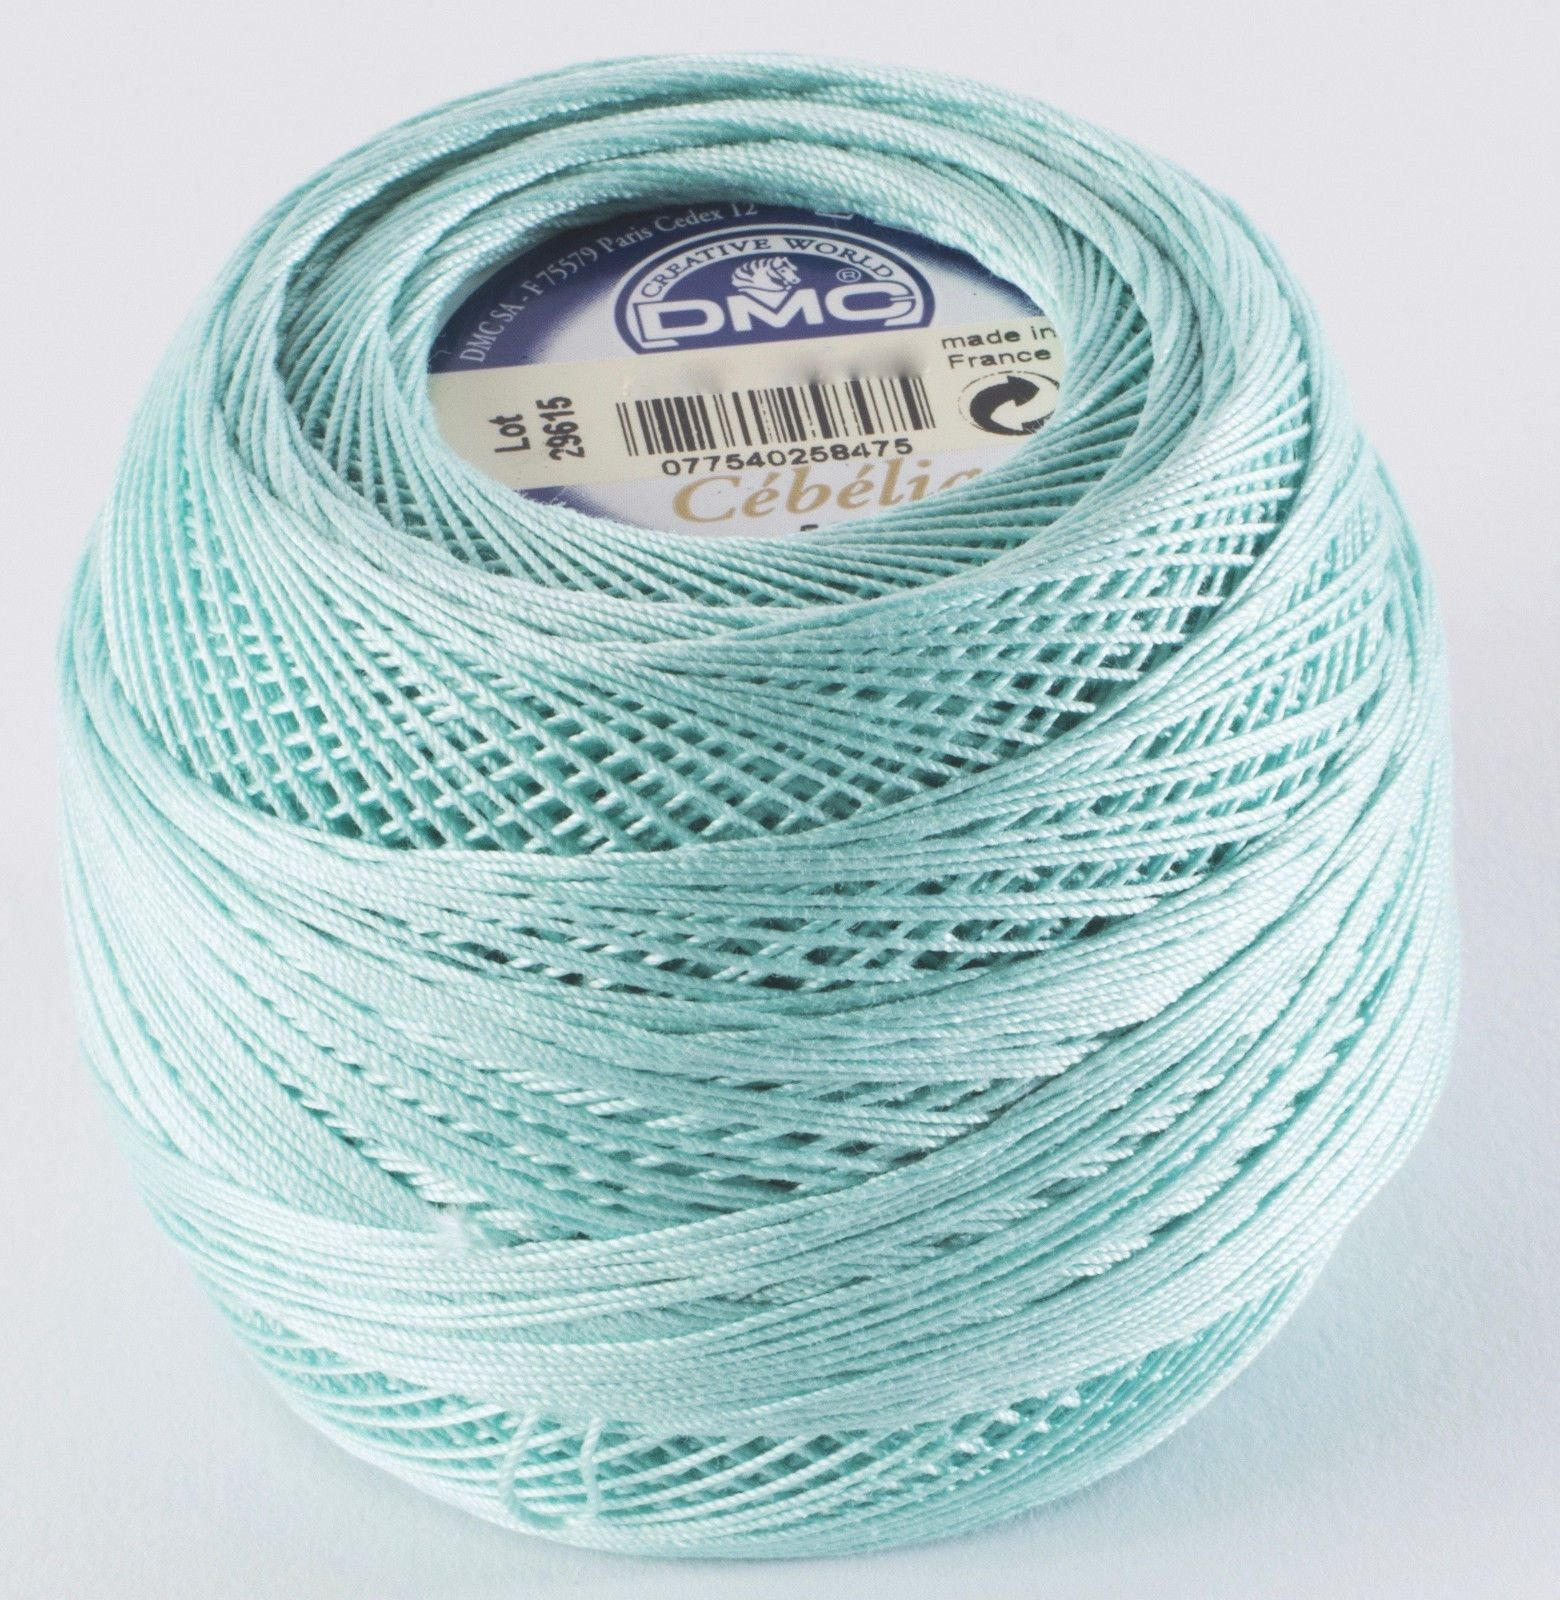 DMC Cebelia 100% Cotton Thread No. 20 Robin Egg Blue